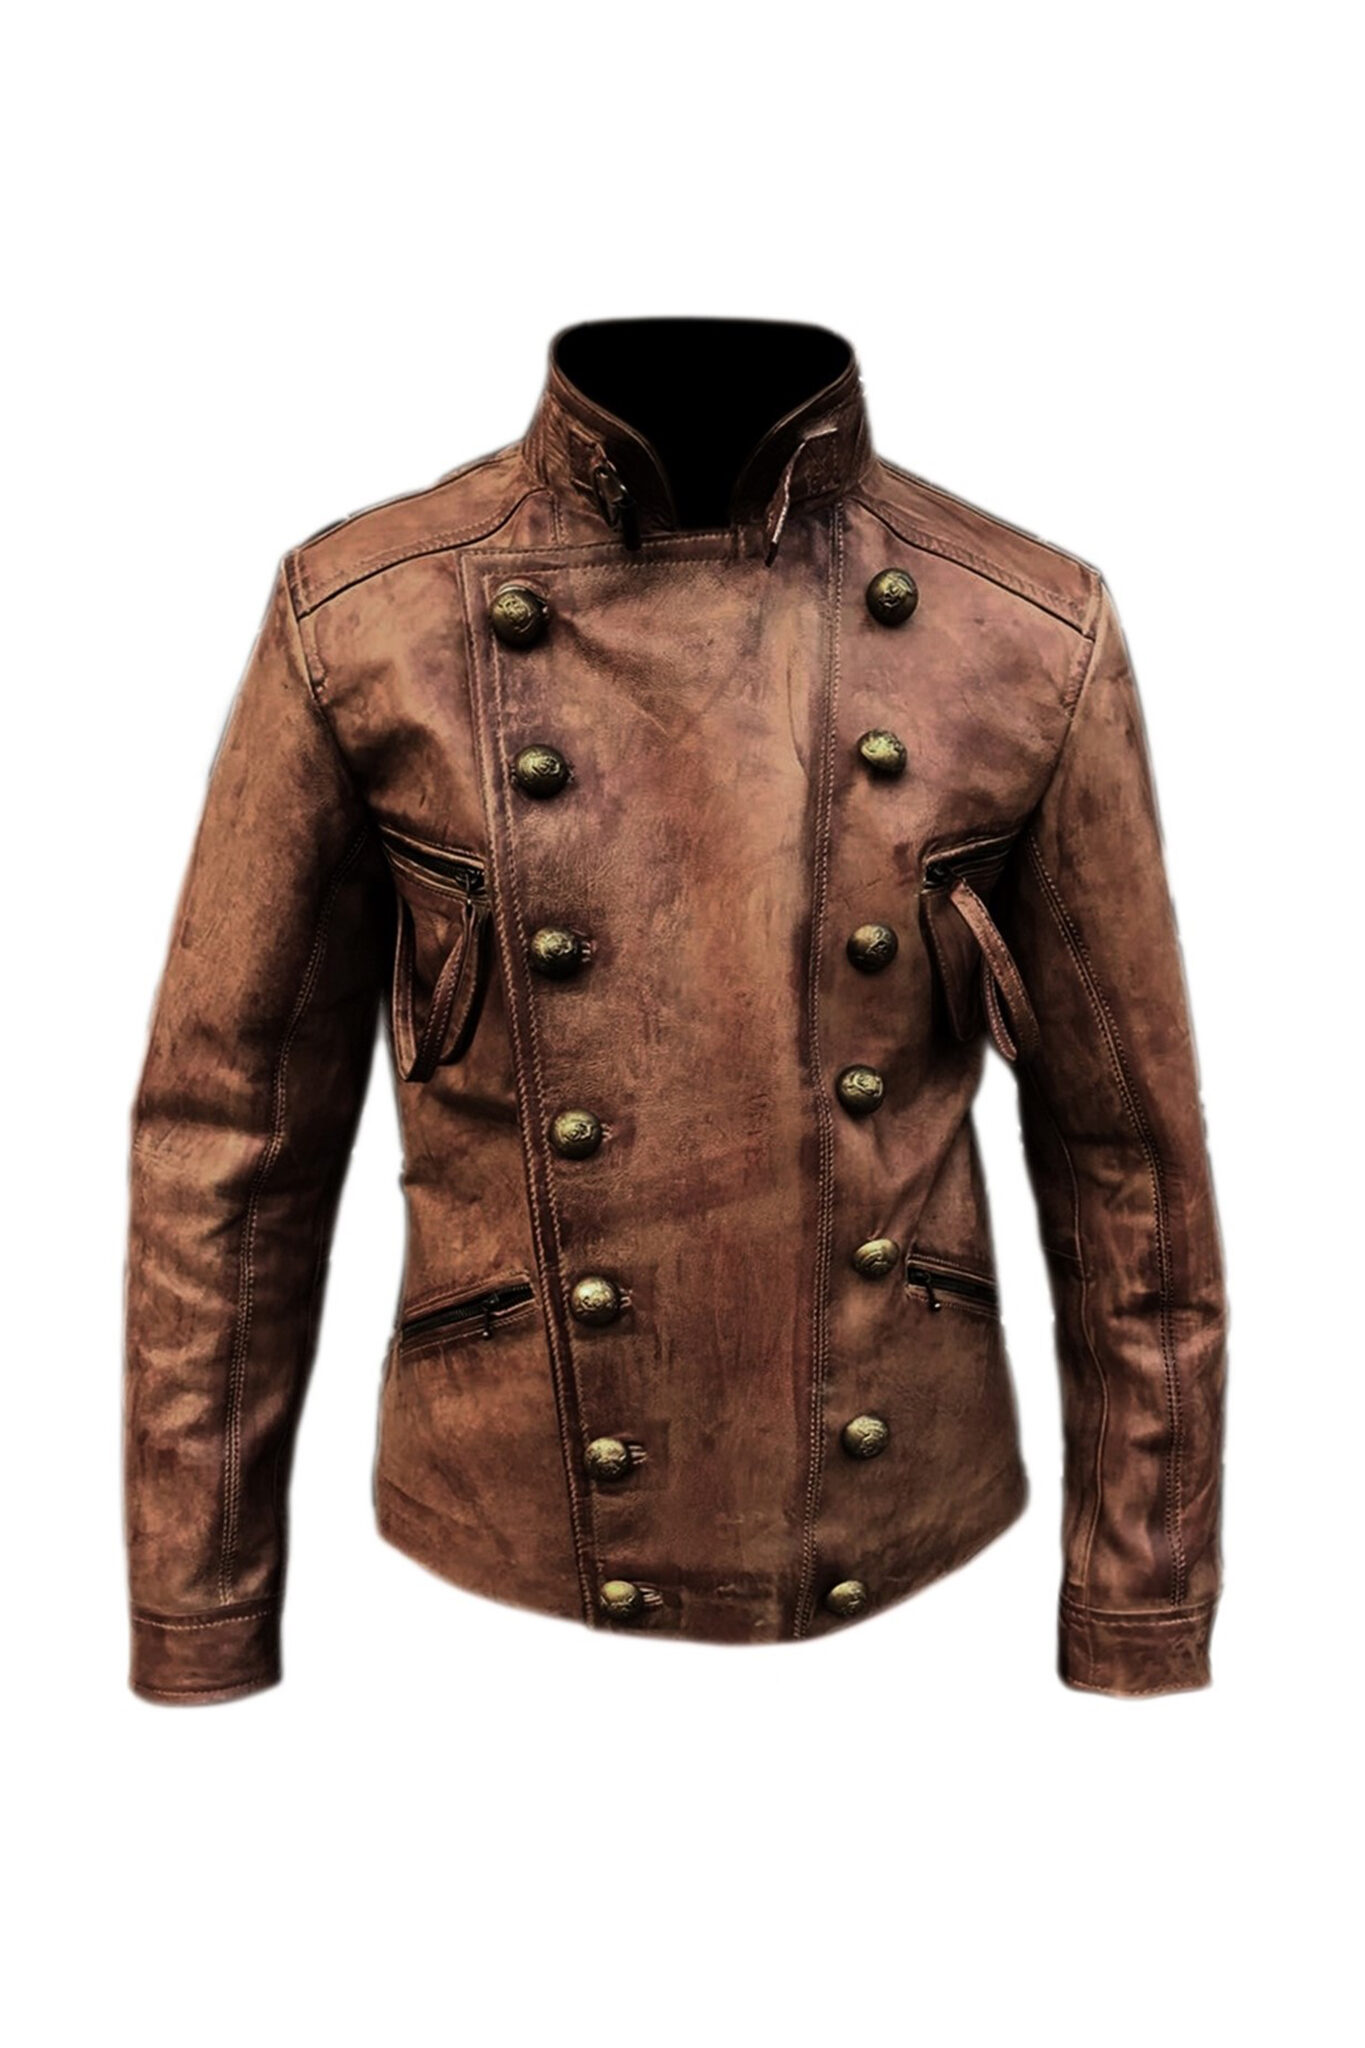 Aqua distressed brown waxed leather jacket for men's1